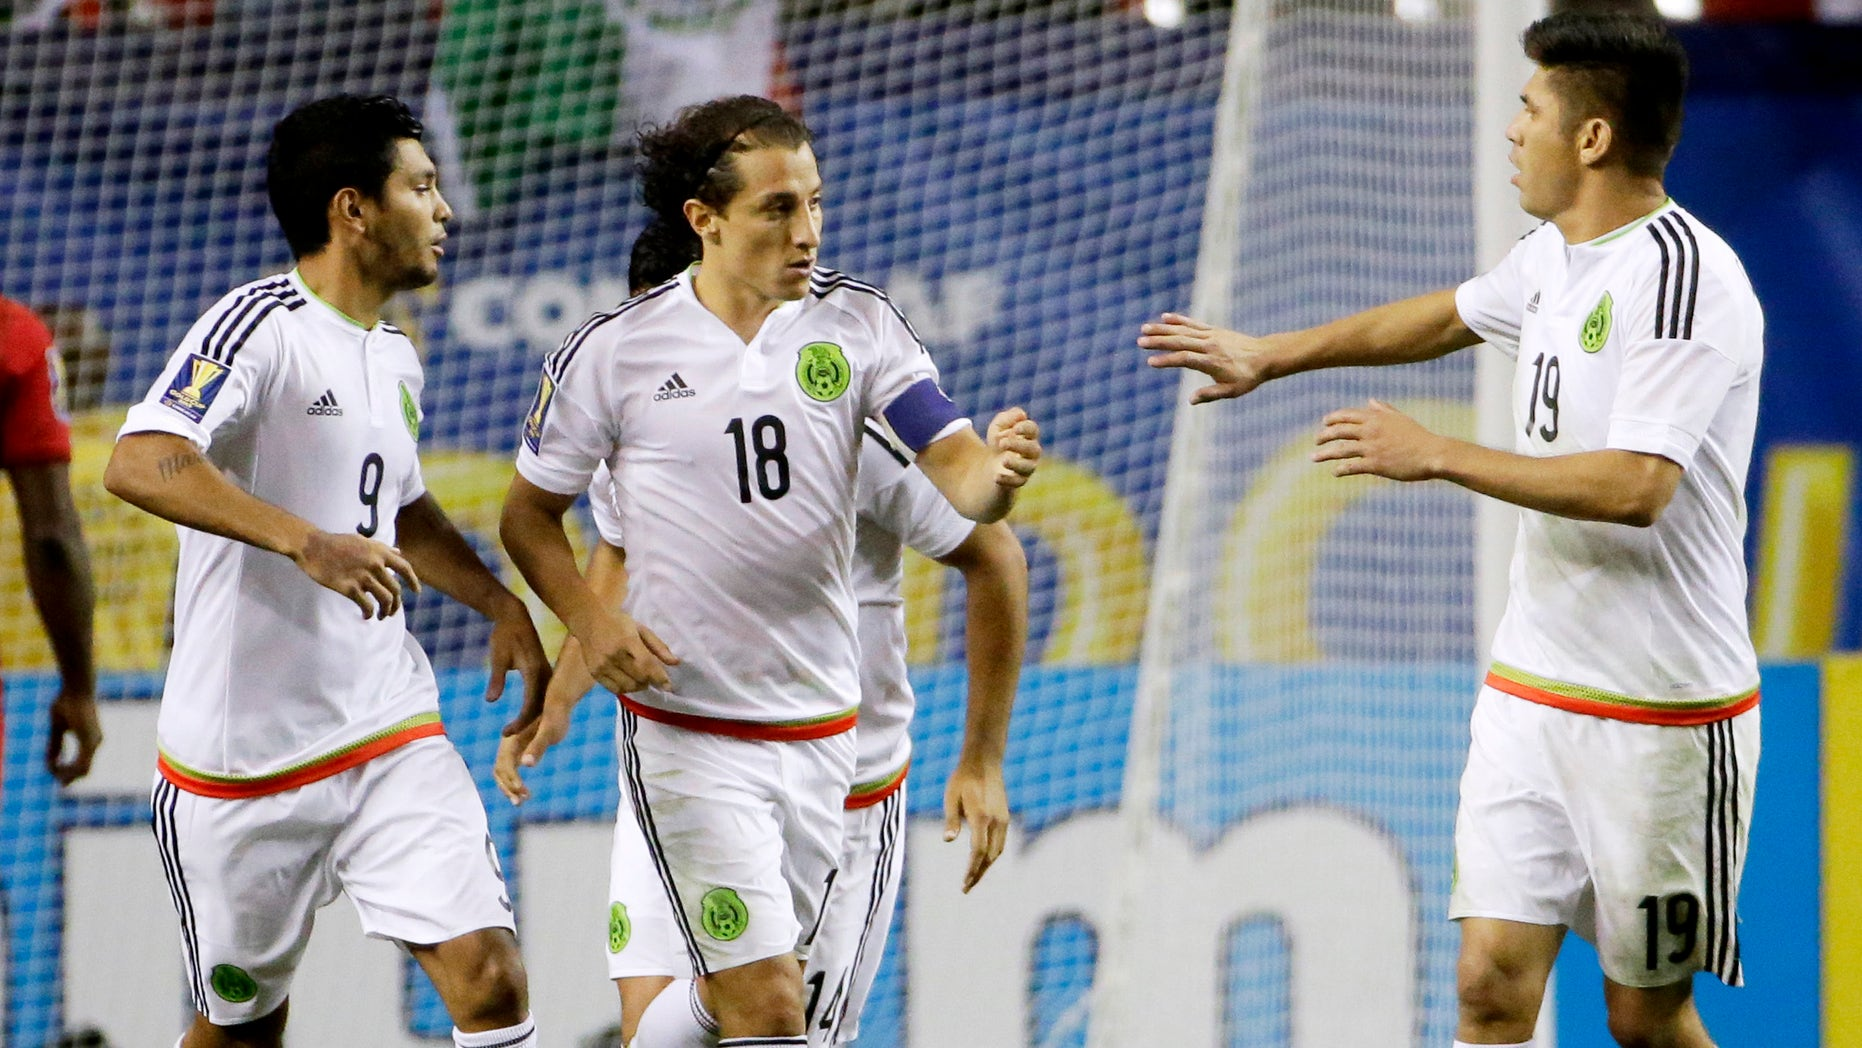 Mexicoâs Andres Guardado, center, is congratulated by teammates Jesus Corona, left, and Oribe Peralta after scoring on a penalty kick during the second half of a CONCACAF Gold Cup soccer semifinal against Panama on Wednesday, July 22, 2015, in Atlanta. (AP Photo/David Goldman)